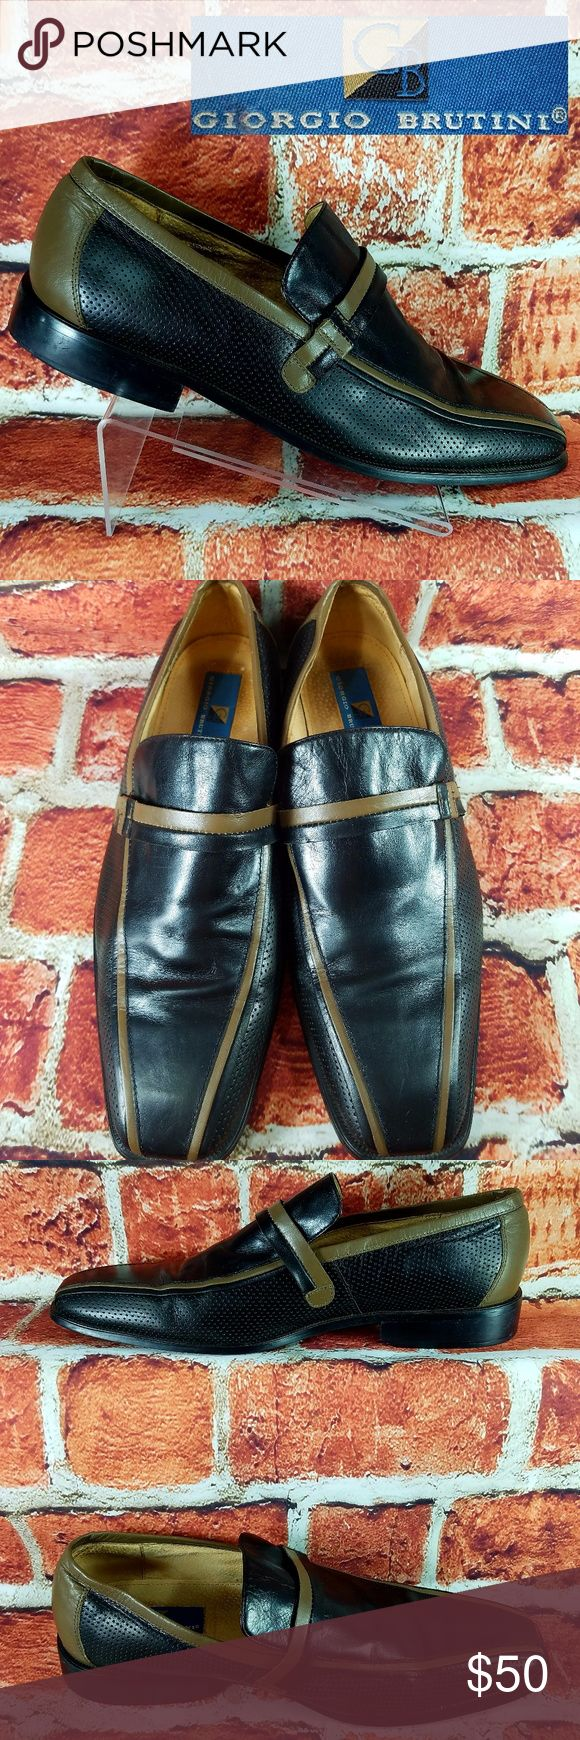 Giorgio Brutini Size 13 Giorgio Brutini Men Slip On Oxfords Loafers Size 13 Black Brown Dress Shoes Giorgio Brutini Shoes Loafers & Slip-Ons